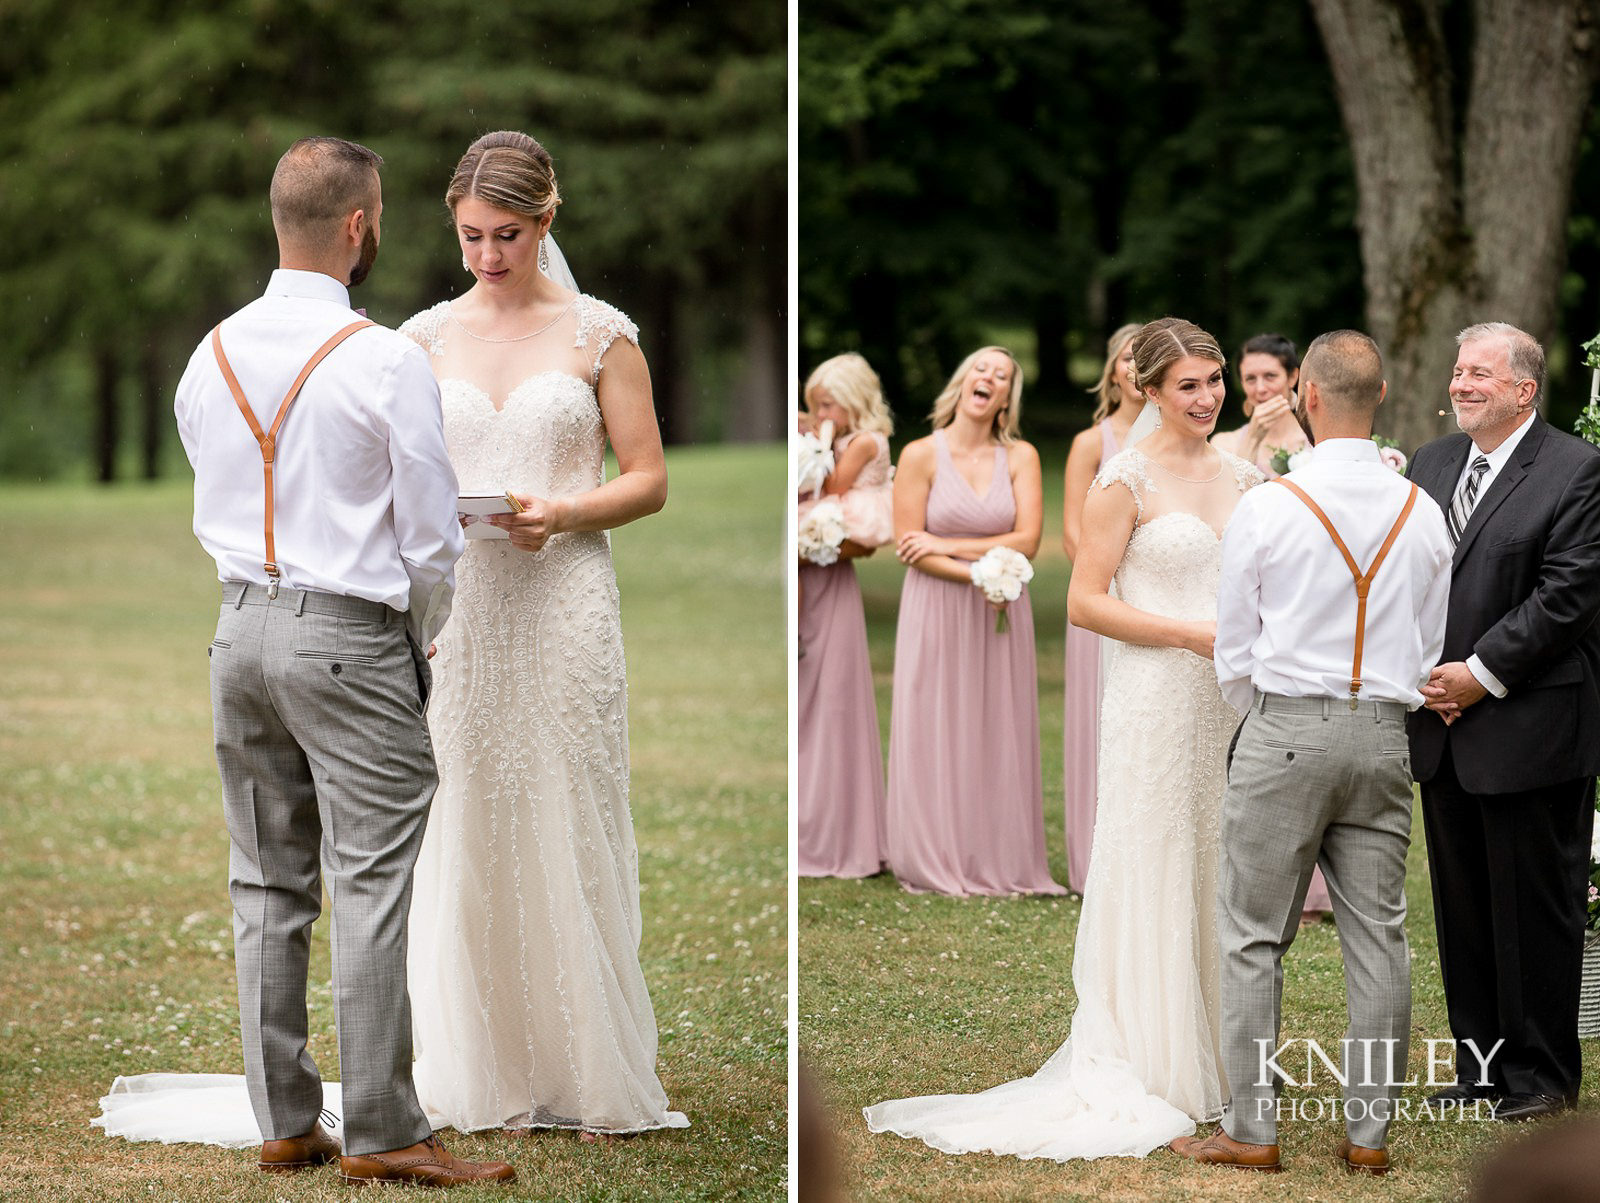 048 - Ontario Golf Club Wedding Pictures collage.jpg